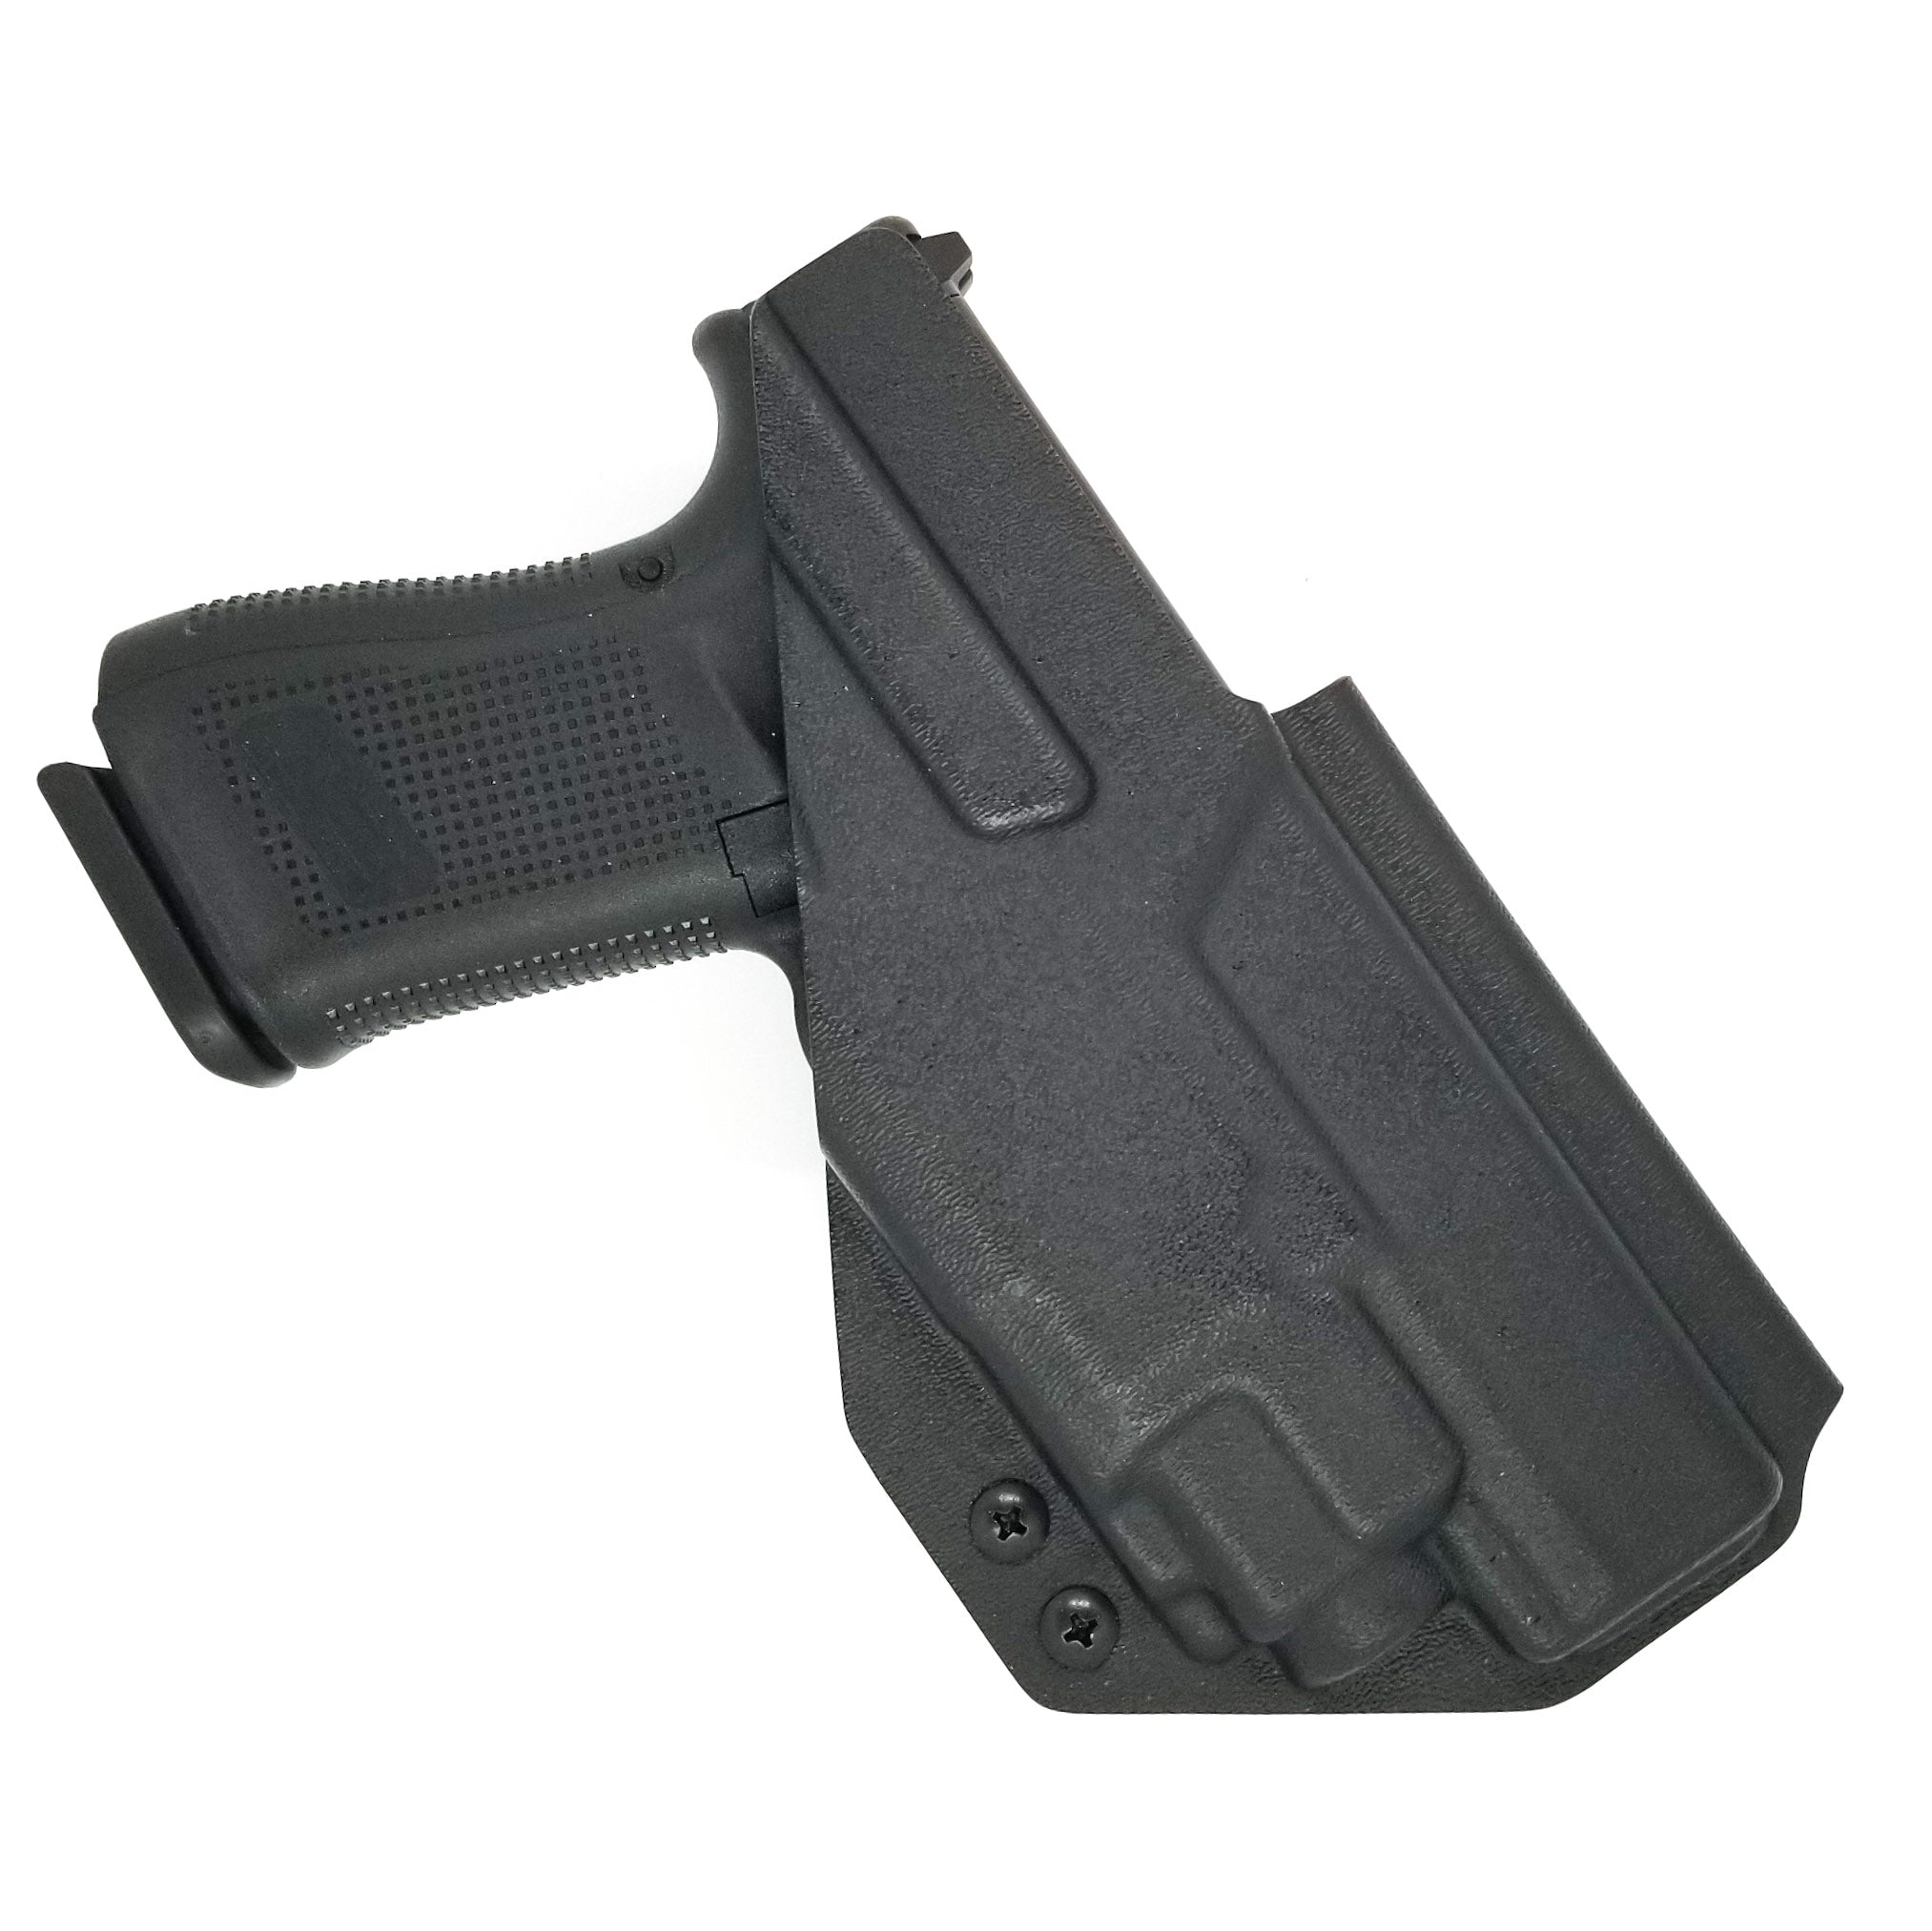 Glock 19 with TLR-8 OWB Holster